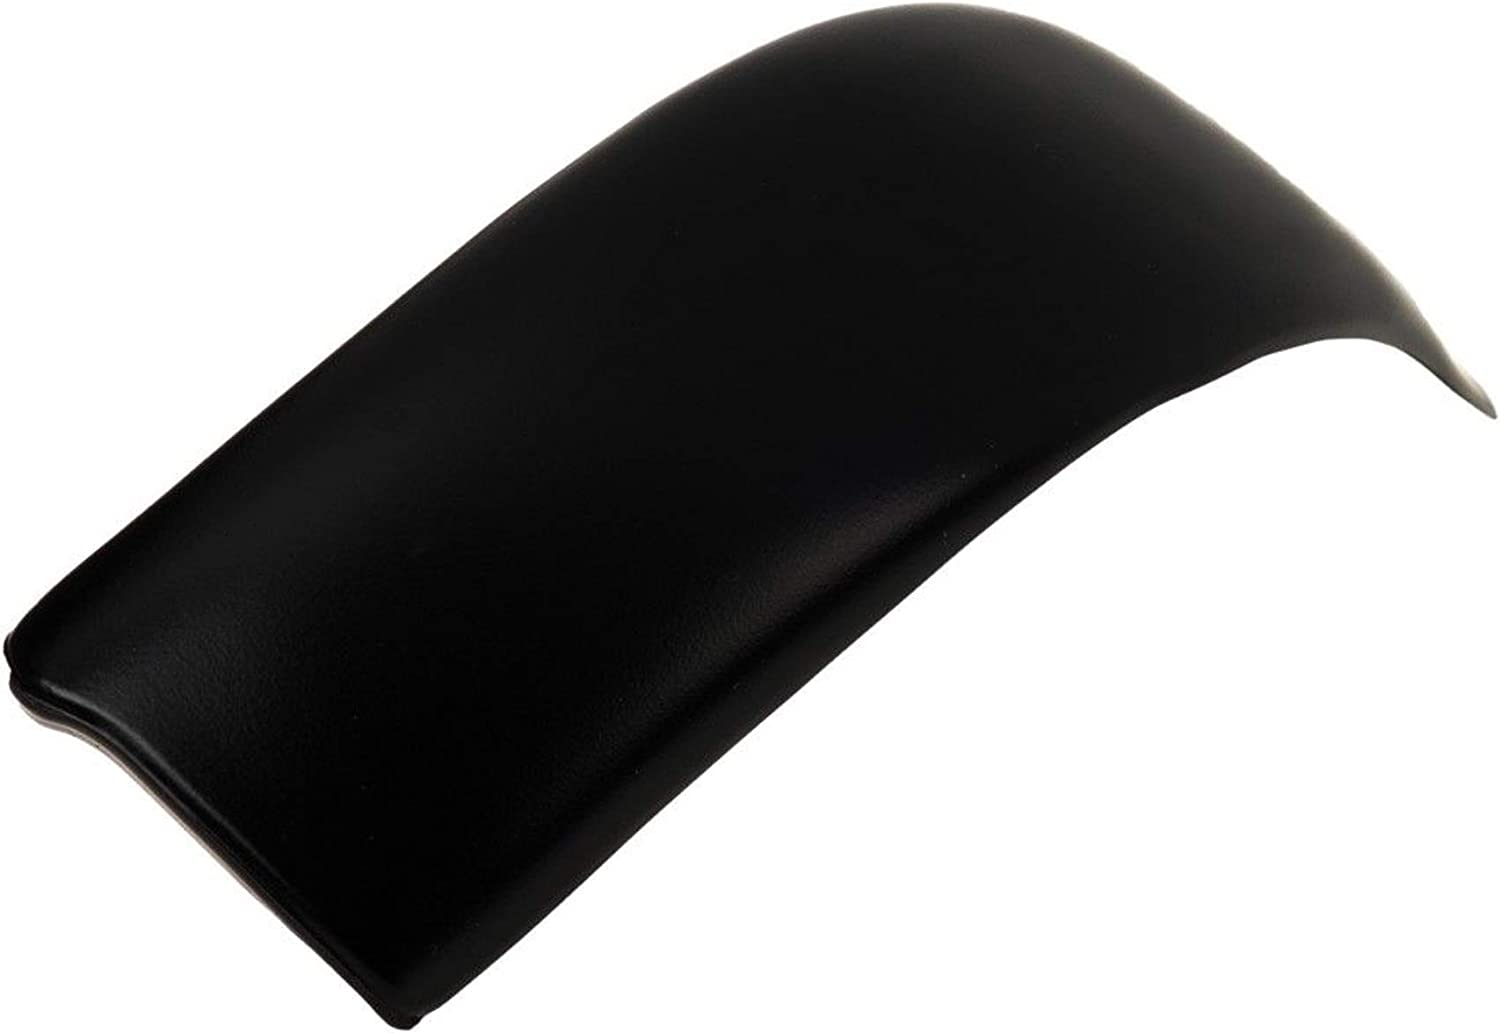 CF Advance Upgraded 99-07 Compatible with F-250 F-350 F-450 F-550 Super Duty Left Driver Side LH Roof Molding YC3Z2551729PTM 1999 2000 2001 2002 2003 2004 2005 2006 2007